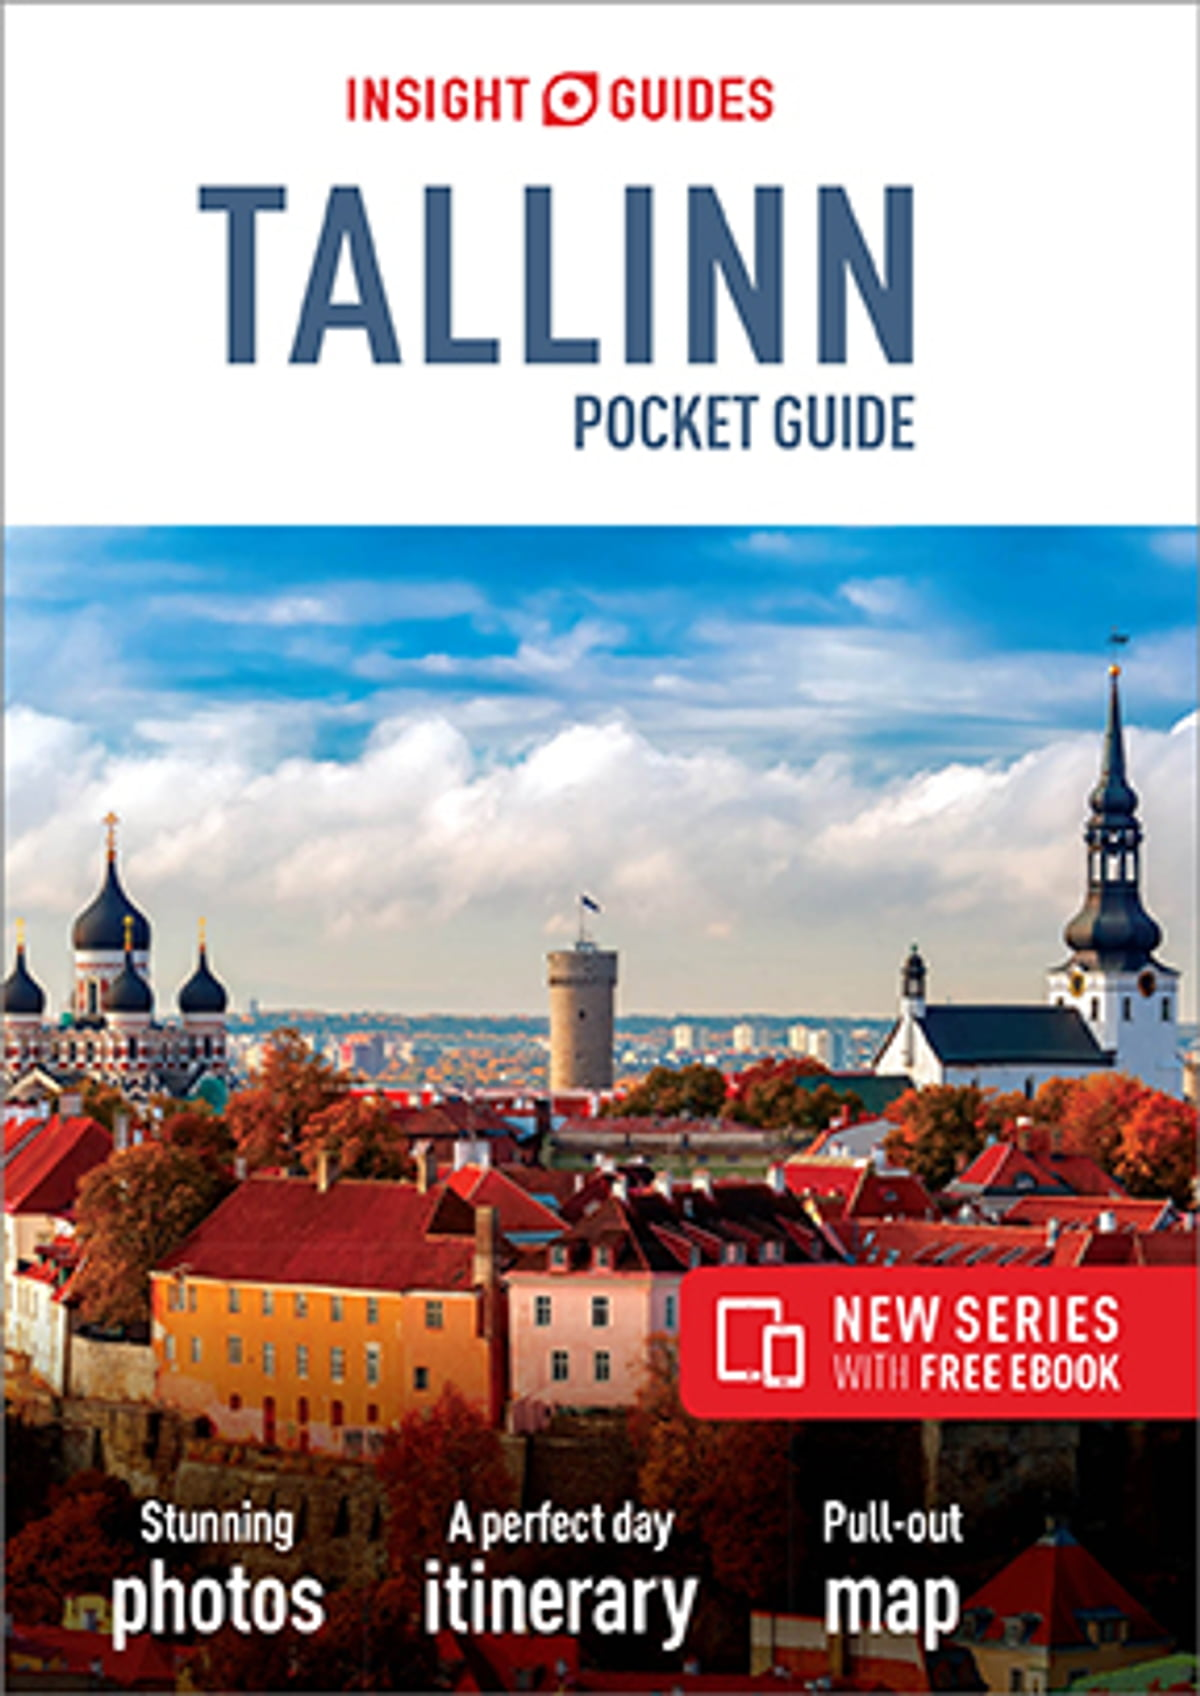 Insight Guides Pocket Tallinn eBook by Insight Guides - 9781789192650 |  Rakuten Kobo